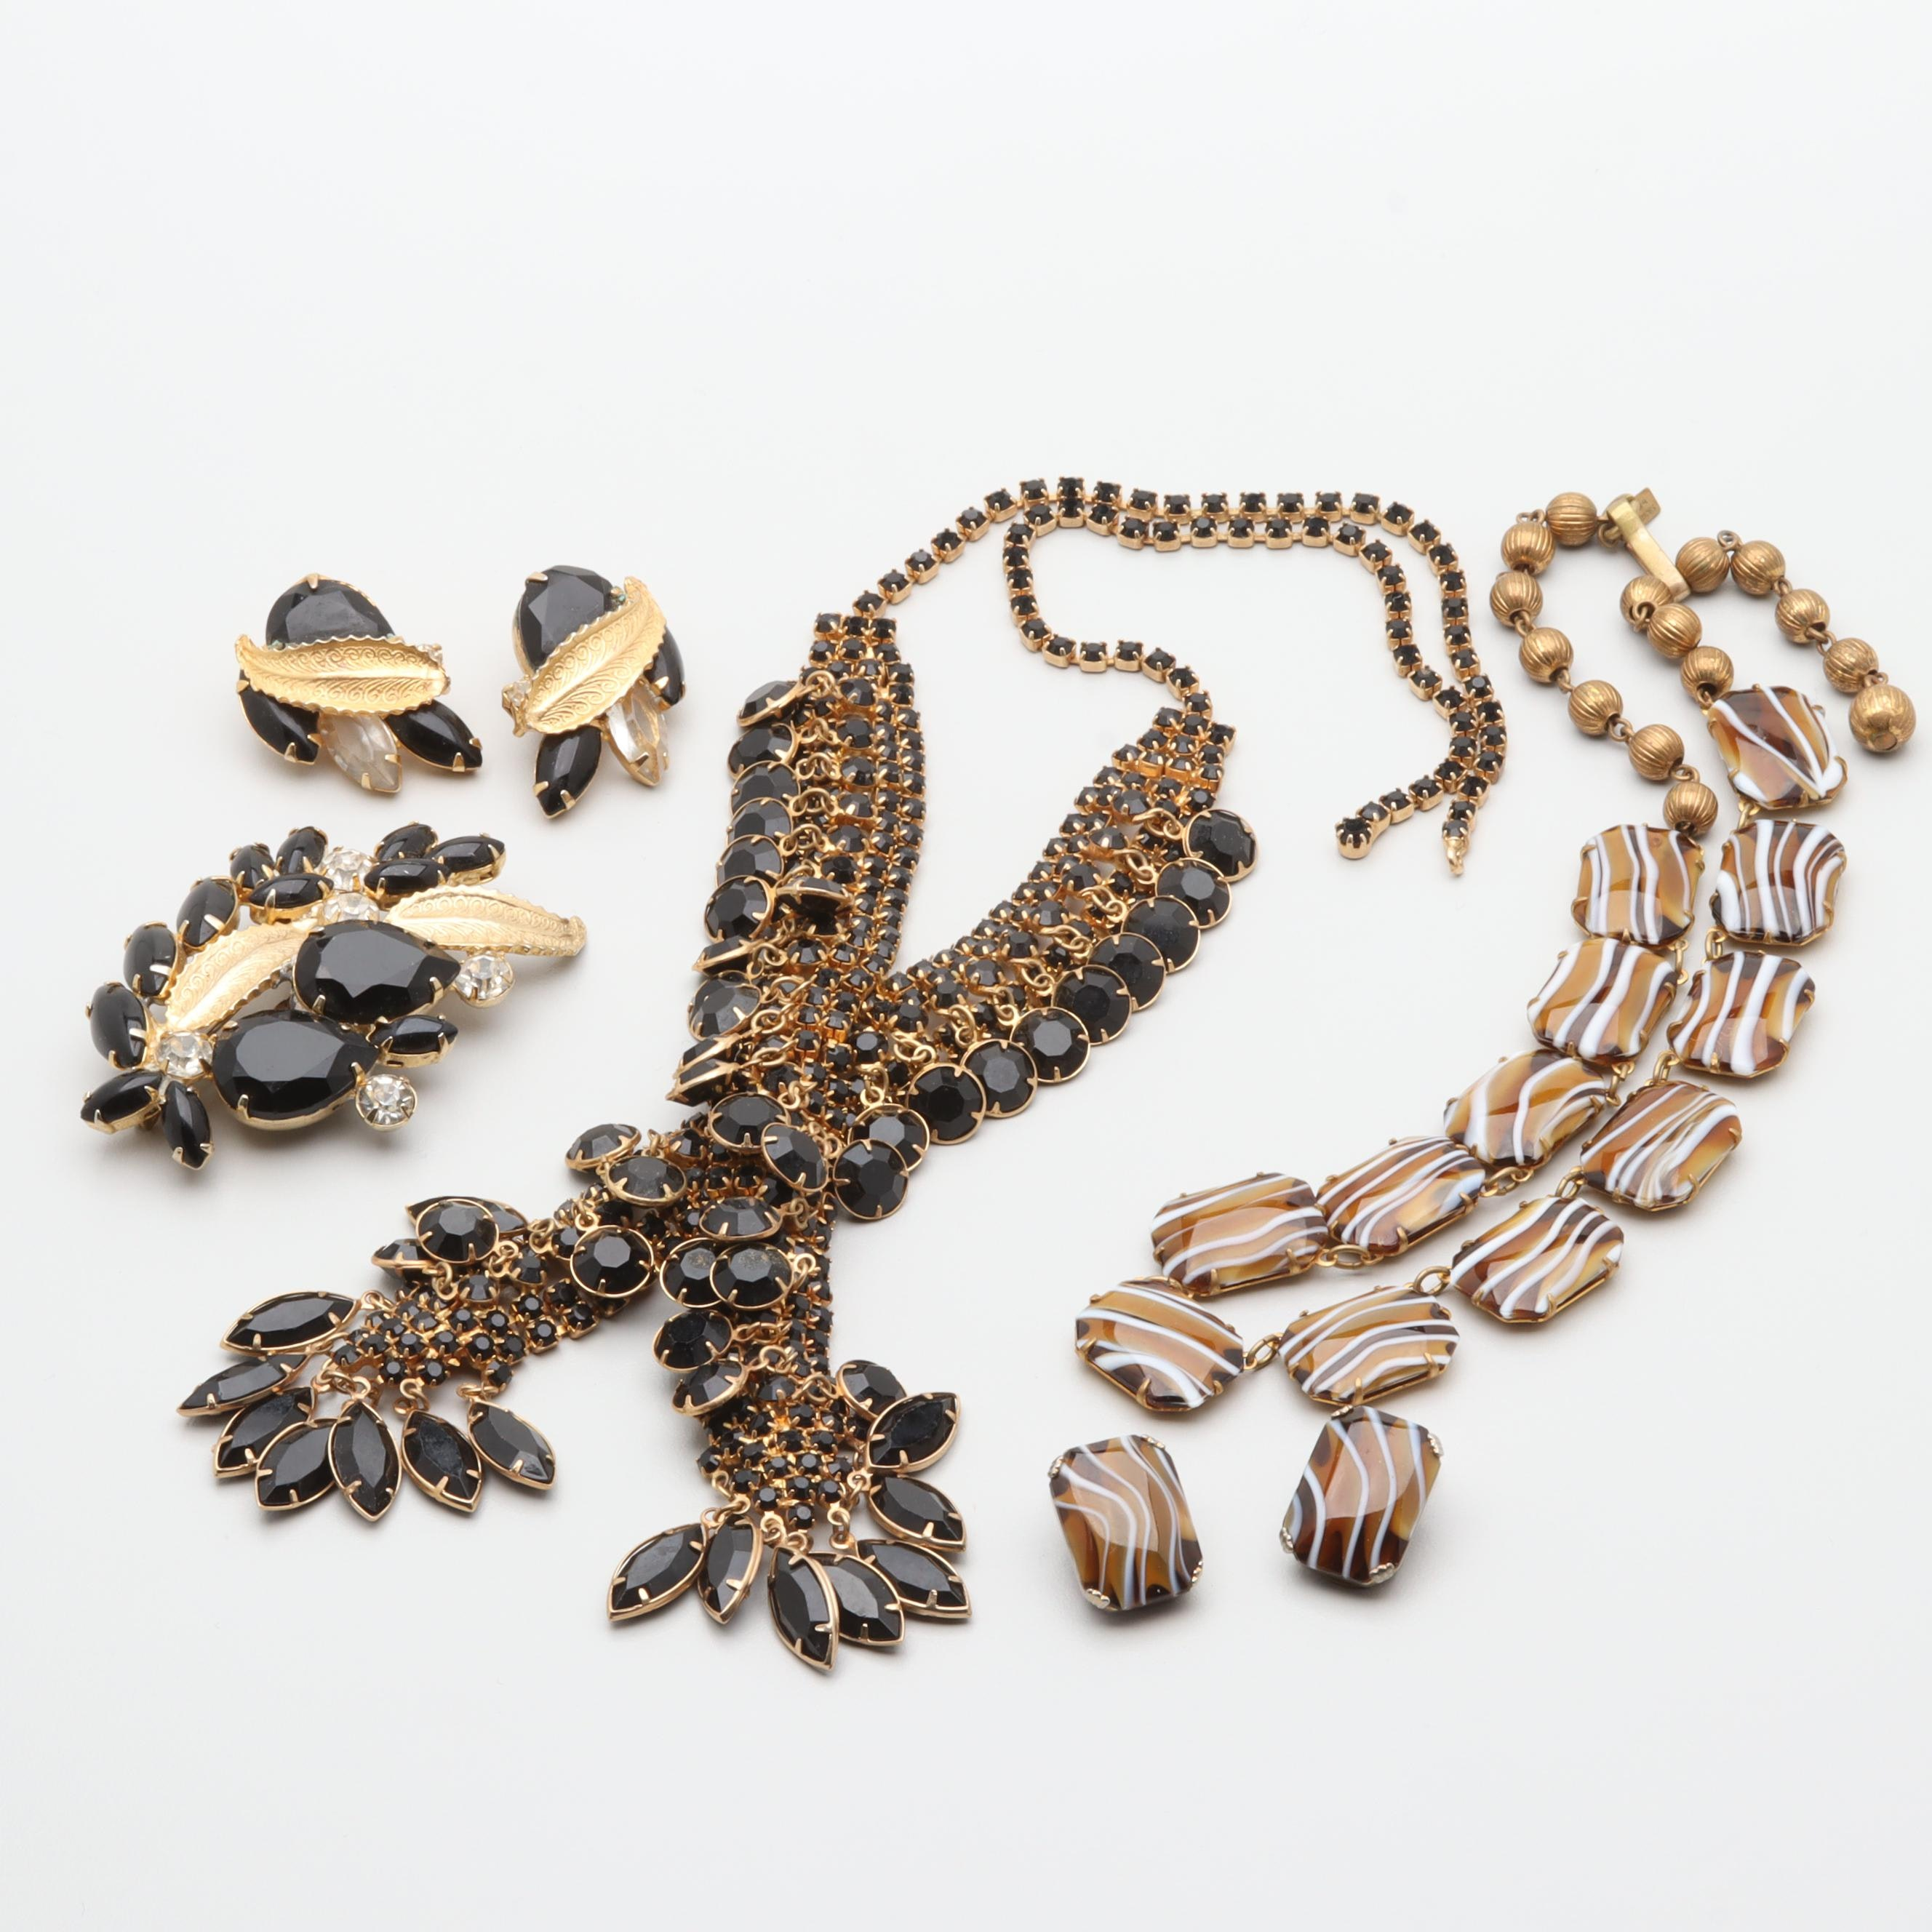 Vintage Gold Tone Glass and Foilback Jewelry Collection